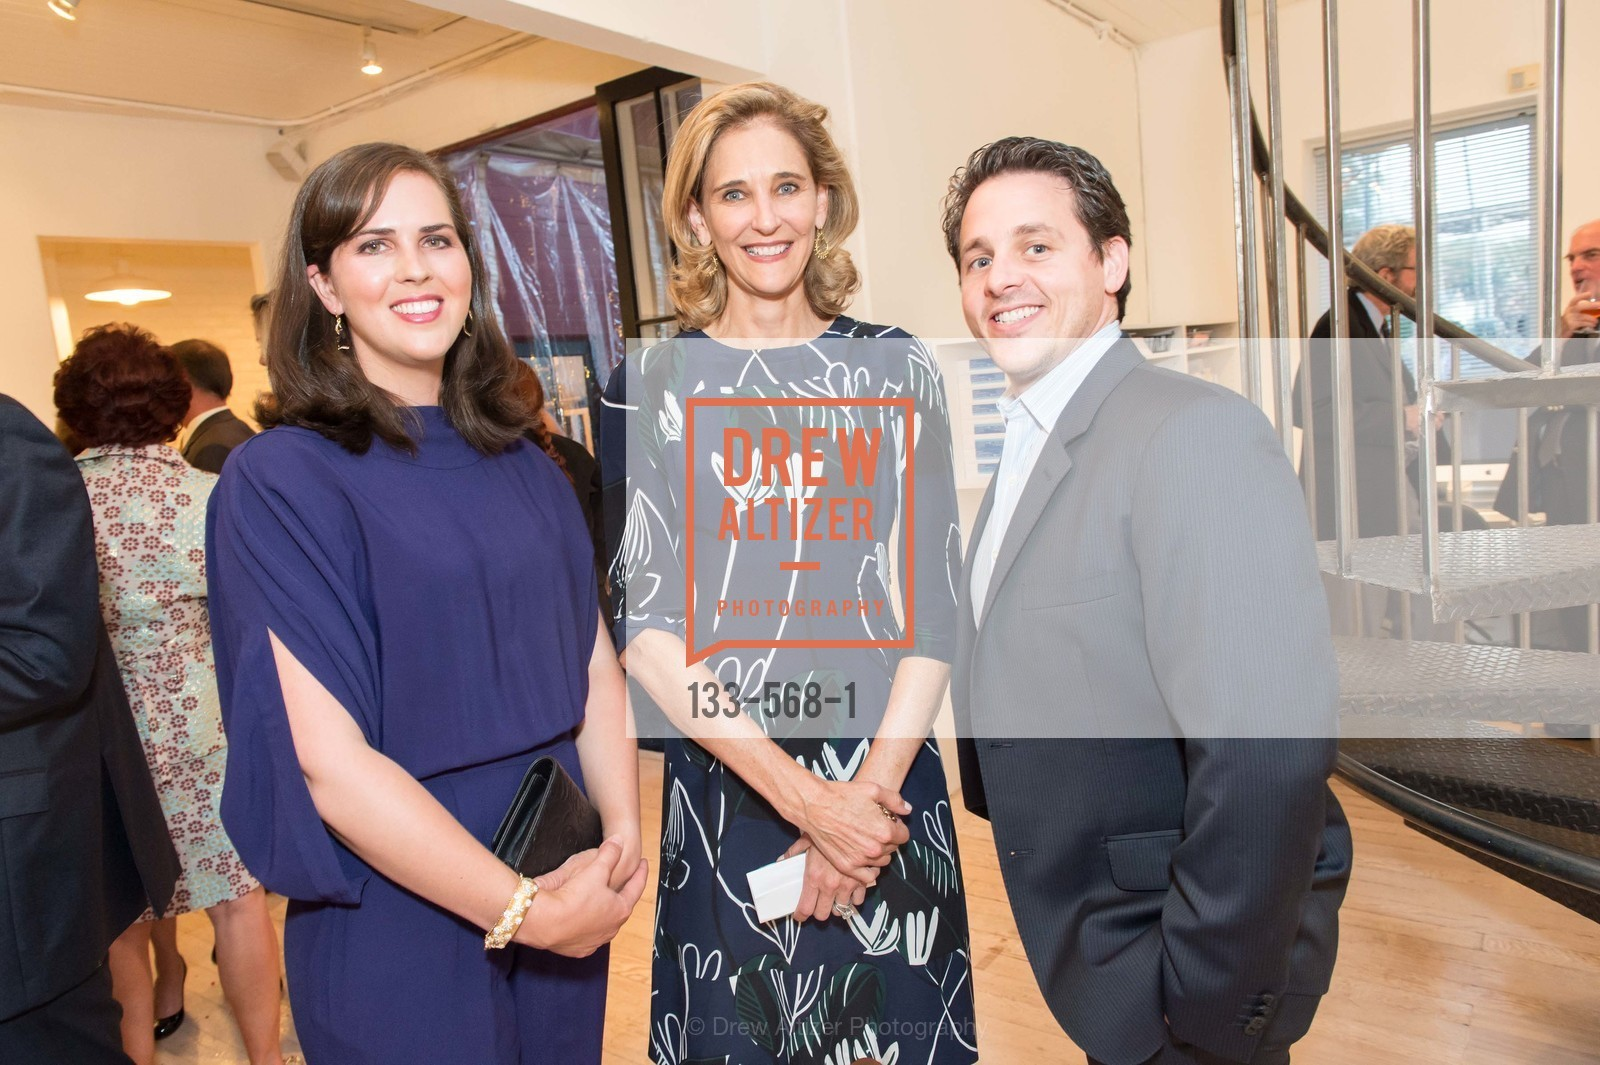 Jennifer Biederbeck, Josh Lippman, SOTHEBY'S  Hosts a Private Viewing of Highlights from the Collection of MRS. PAUL MELLON, US, September 17th, 2014,Drew Altizer, Drew Altizer Photography, full-service agency, private events, San Francisco photographer, photographer california